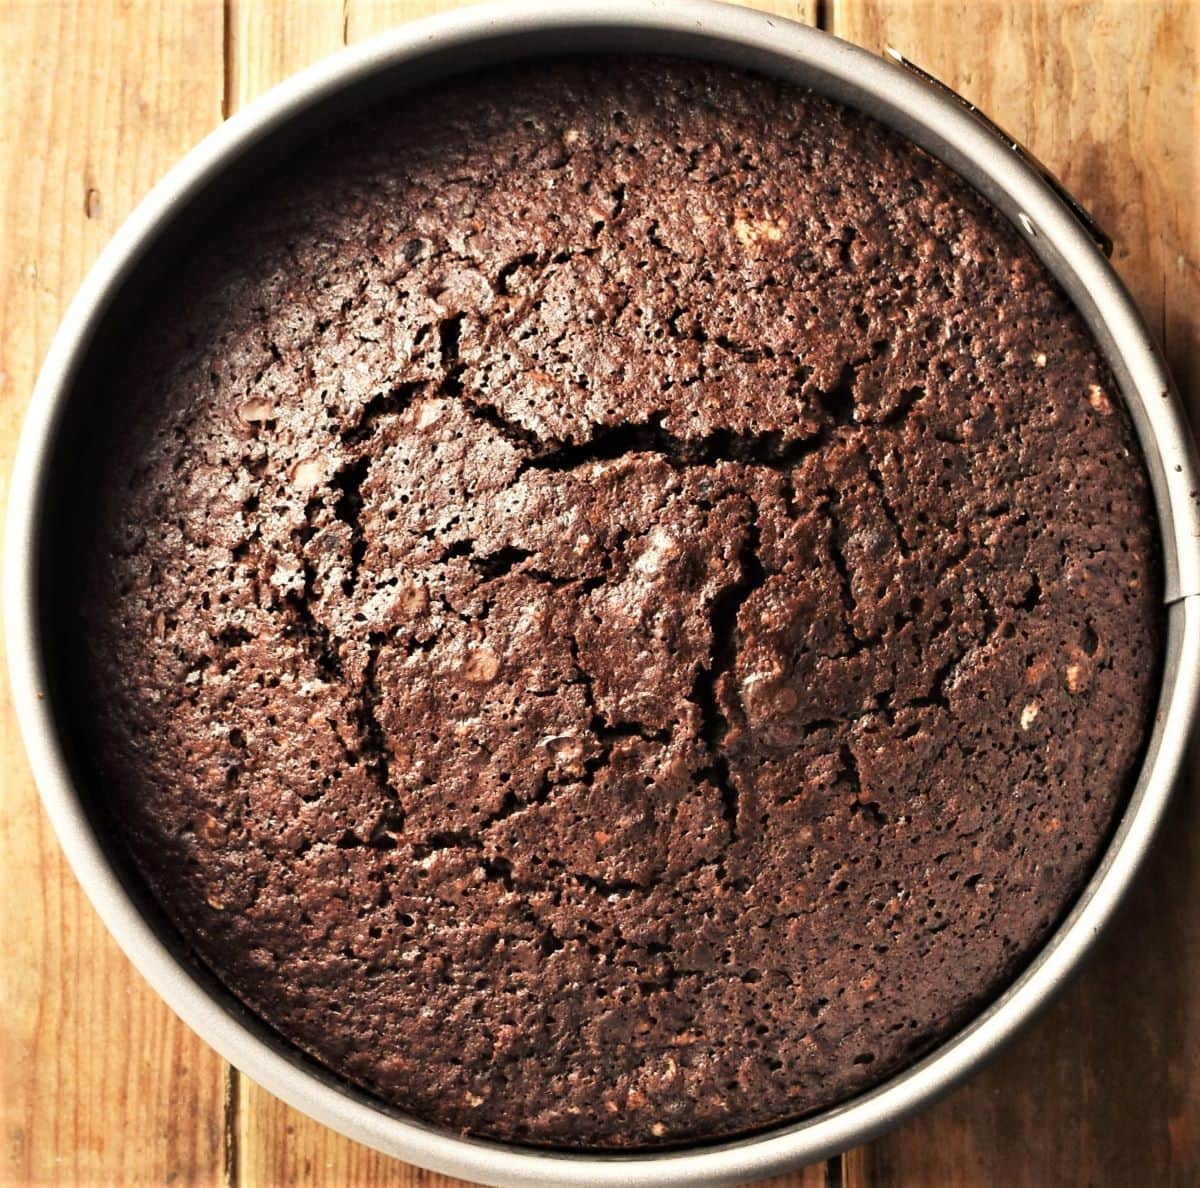 Ready baked chocolate cake in round pan.